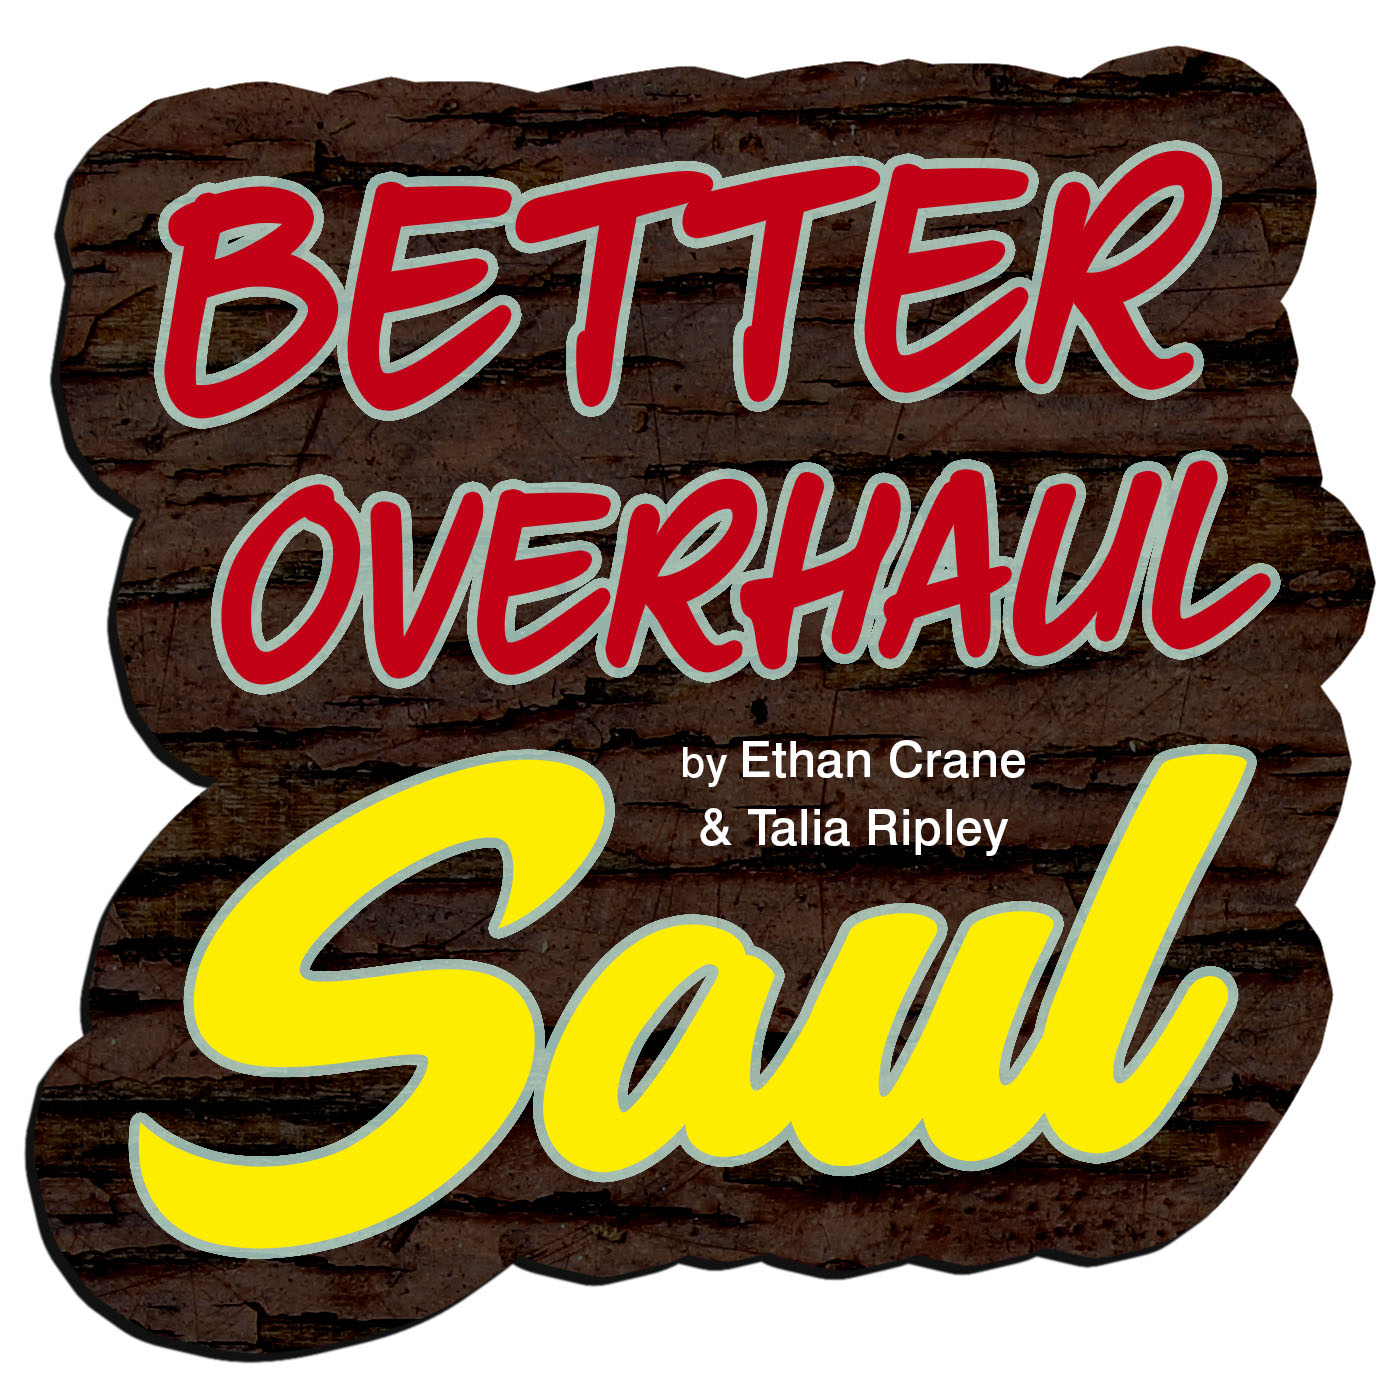 Better Overhaul Saul: a podcast on Netflix Better Call Saul